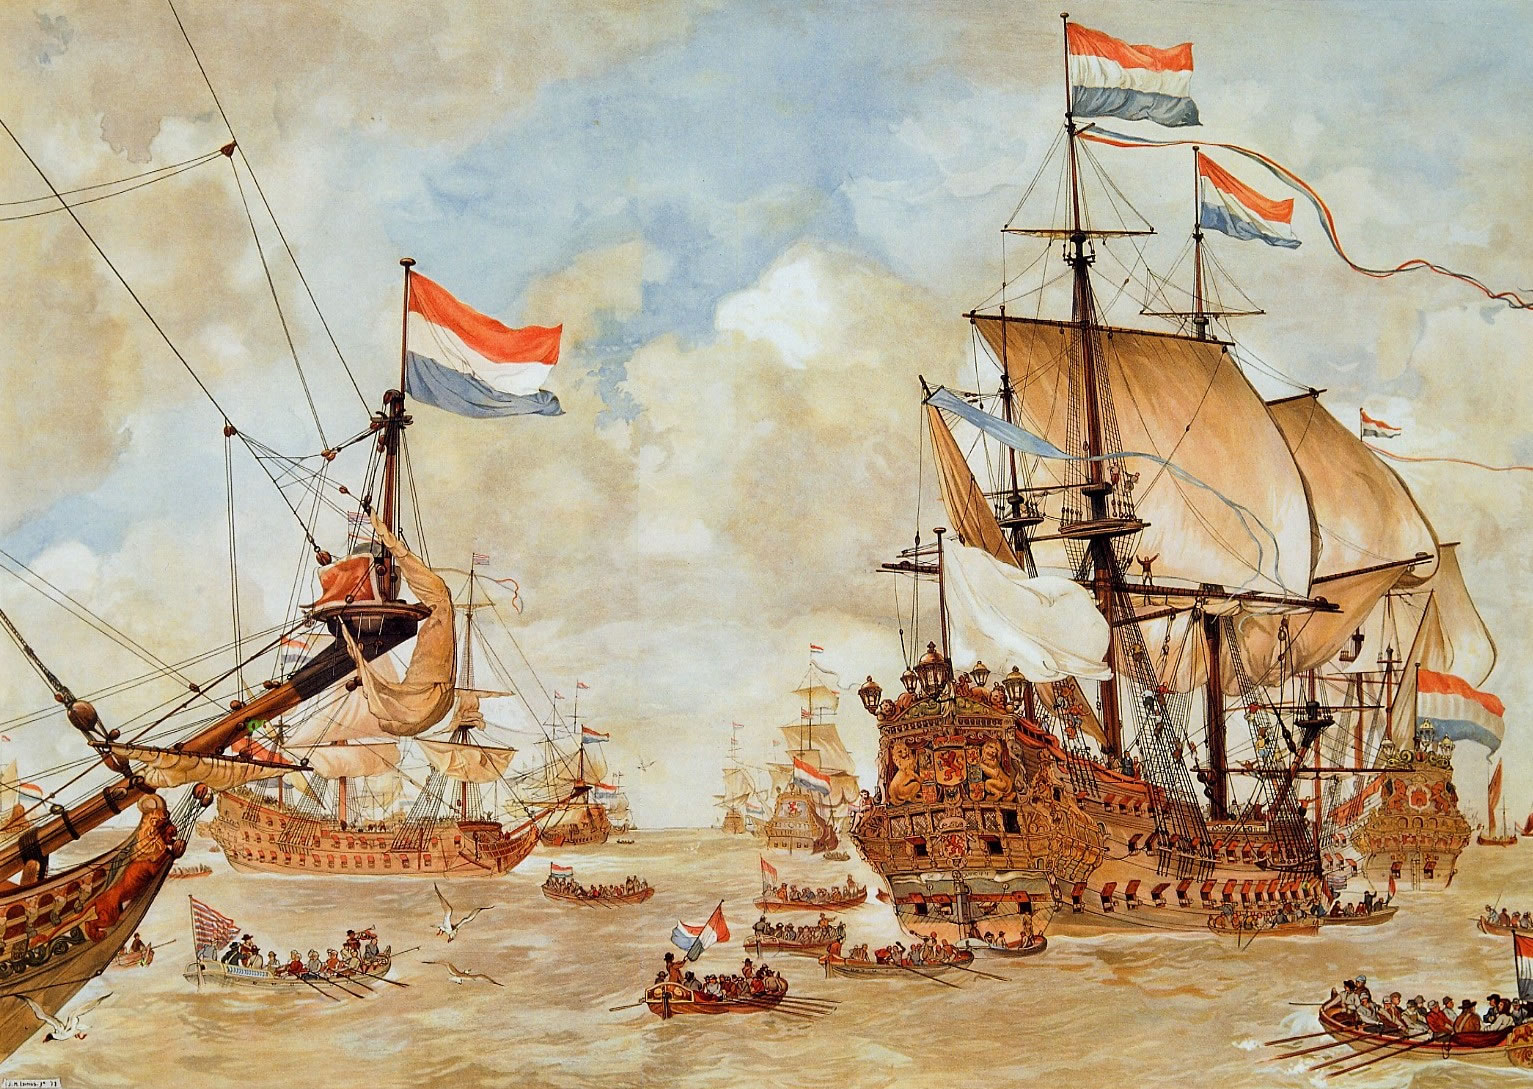 Drawn ship dutch Velde the »  van